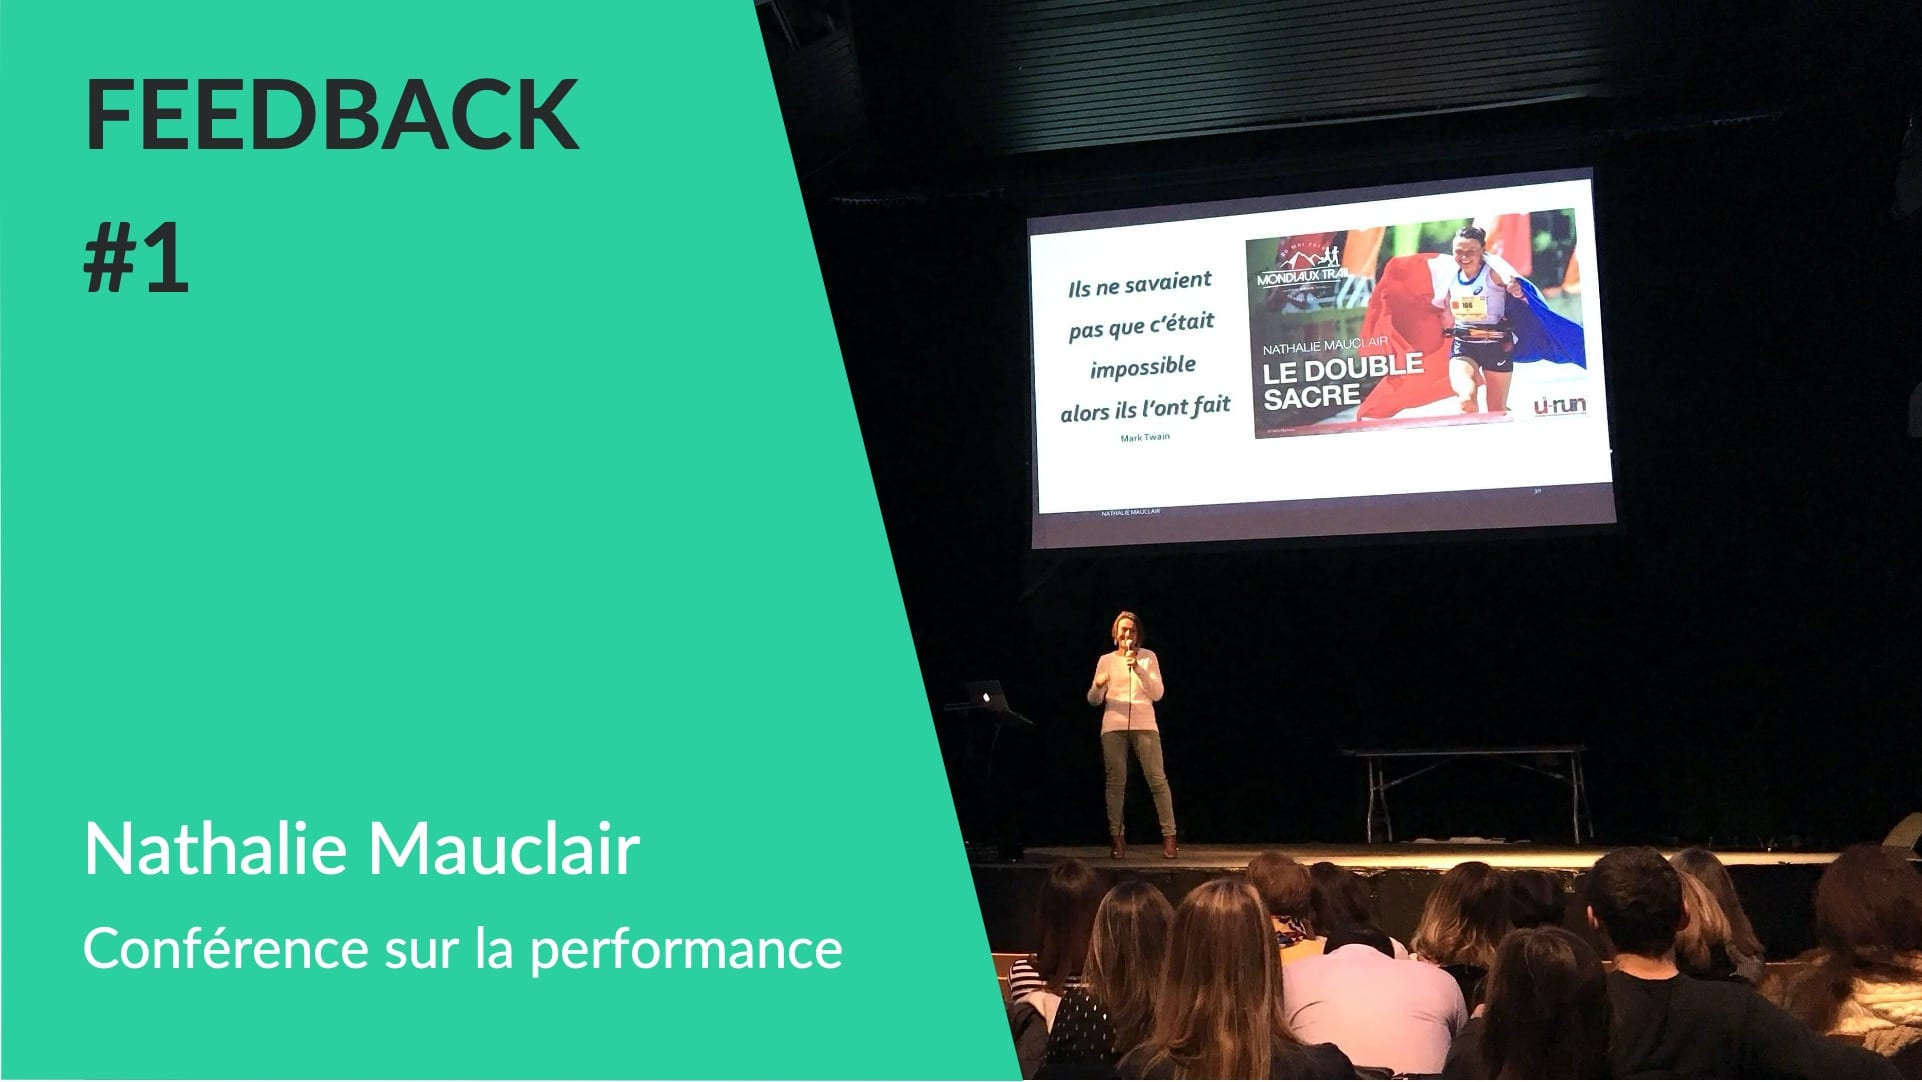 feedback client wechamp conférence belambra club Nathalie Mauclair